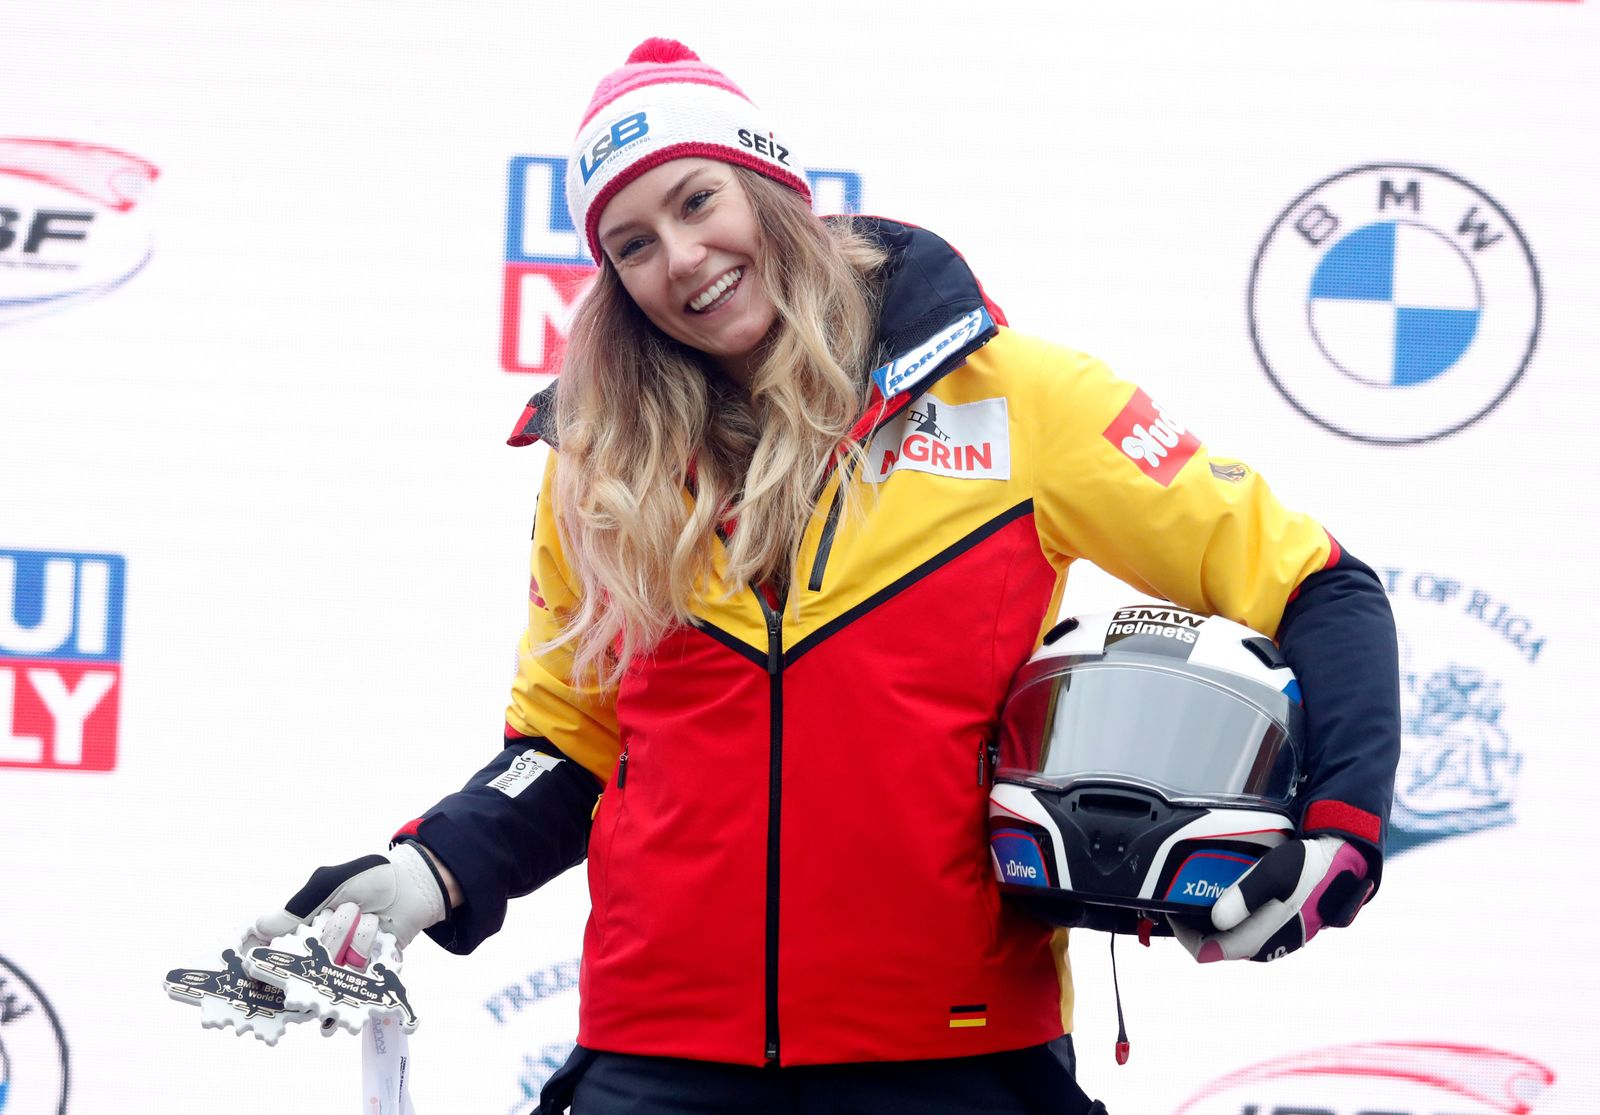 Bobsleigh World Cup in Sigulda, Latvia - 28 Nov 2020